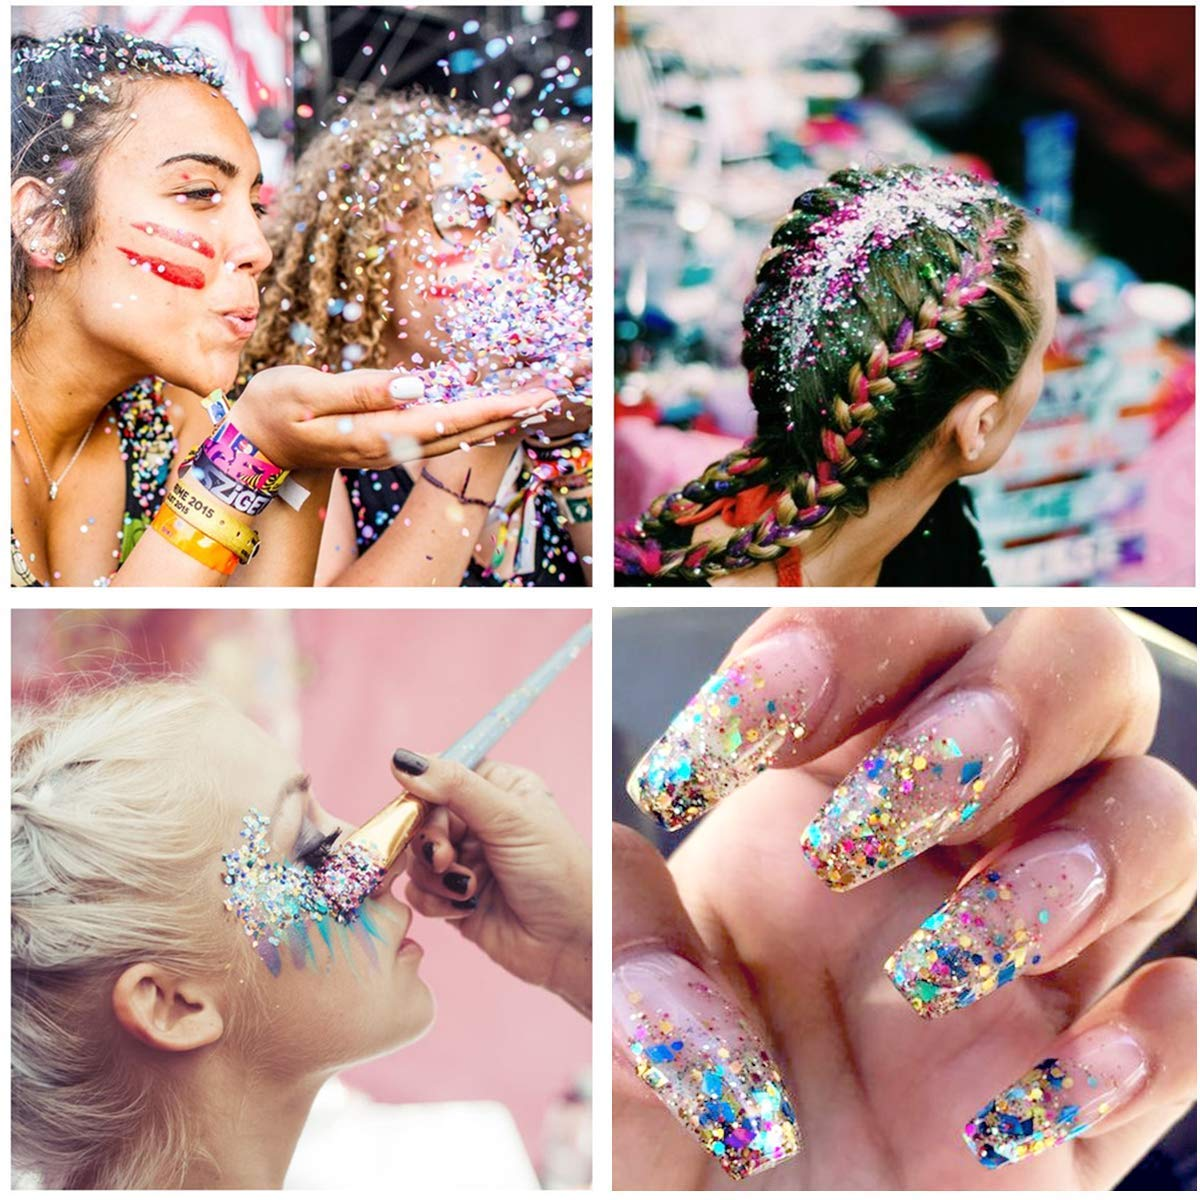 Body Glitter Face Glitter, 6 Mixed Color Glitter with 1pcs Non Toxic Sticky Gel, Hair Glitter Rave Accessories